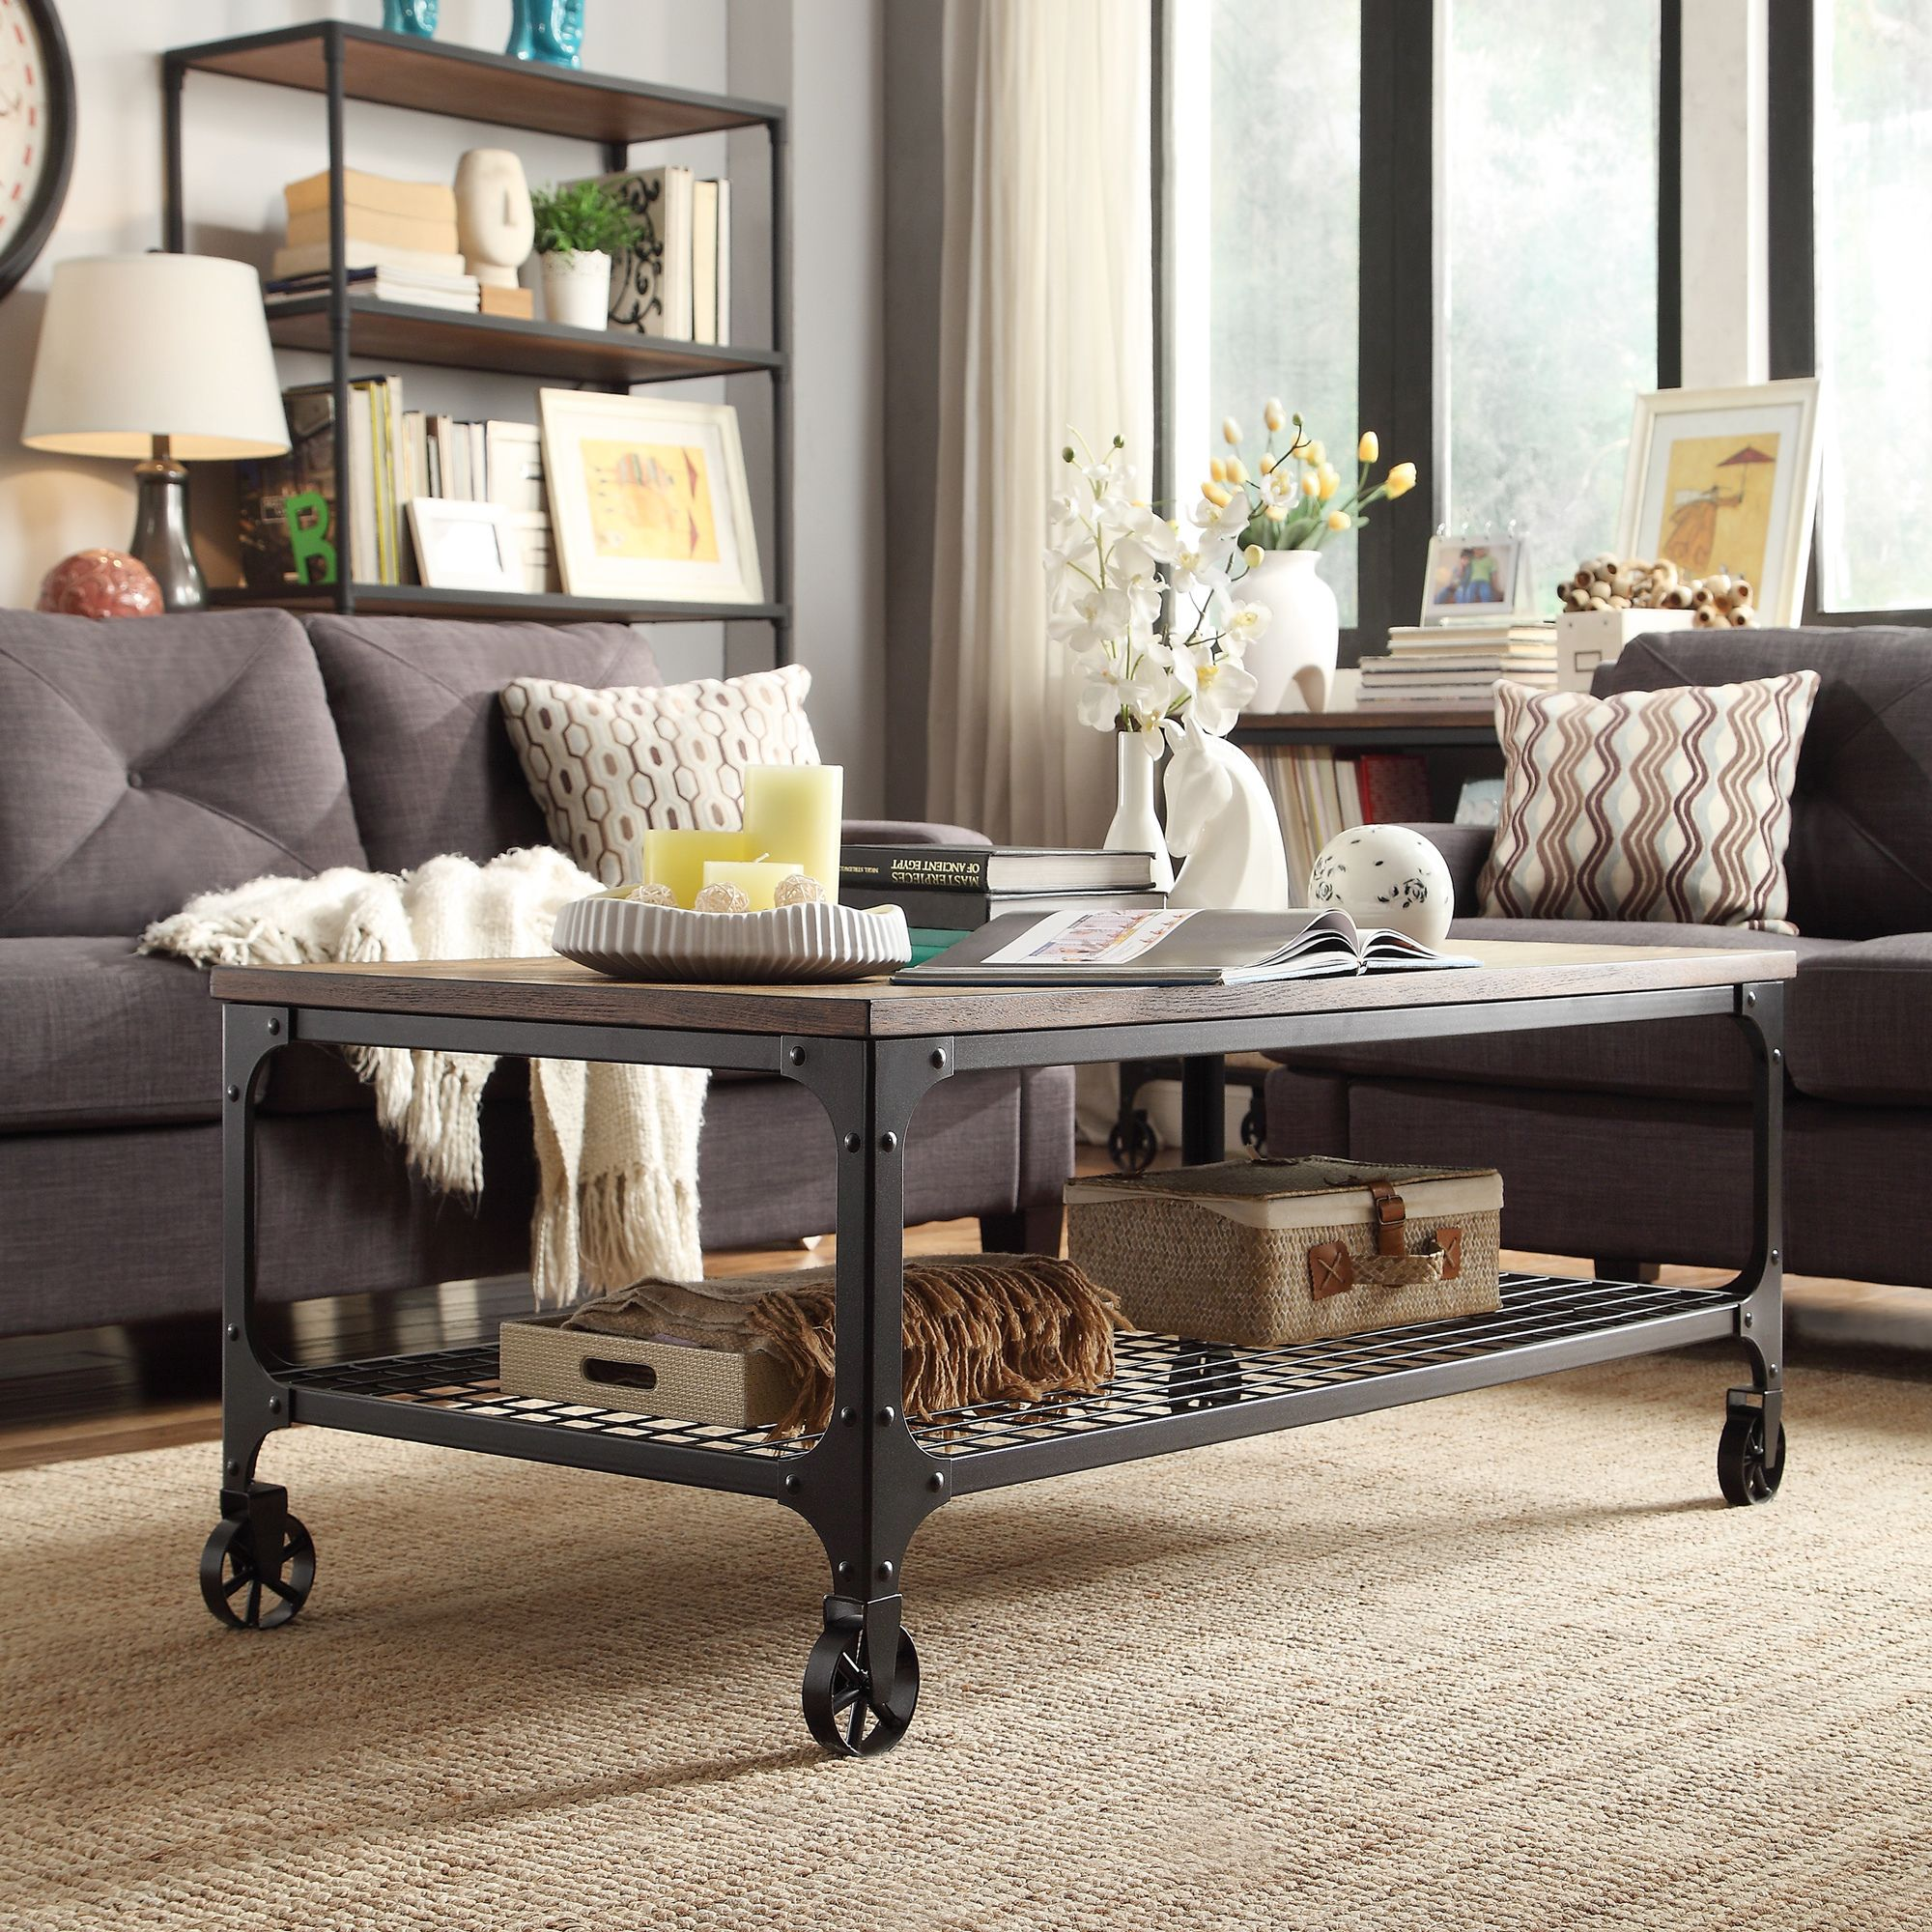 Nelson Industrial Modern Rustic Cocktail Table by iNSPIRE Q Classic by  iNSPIRE Q